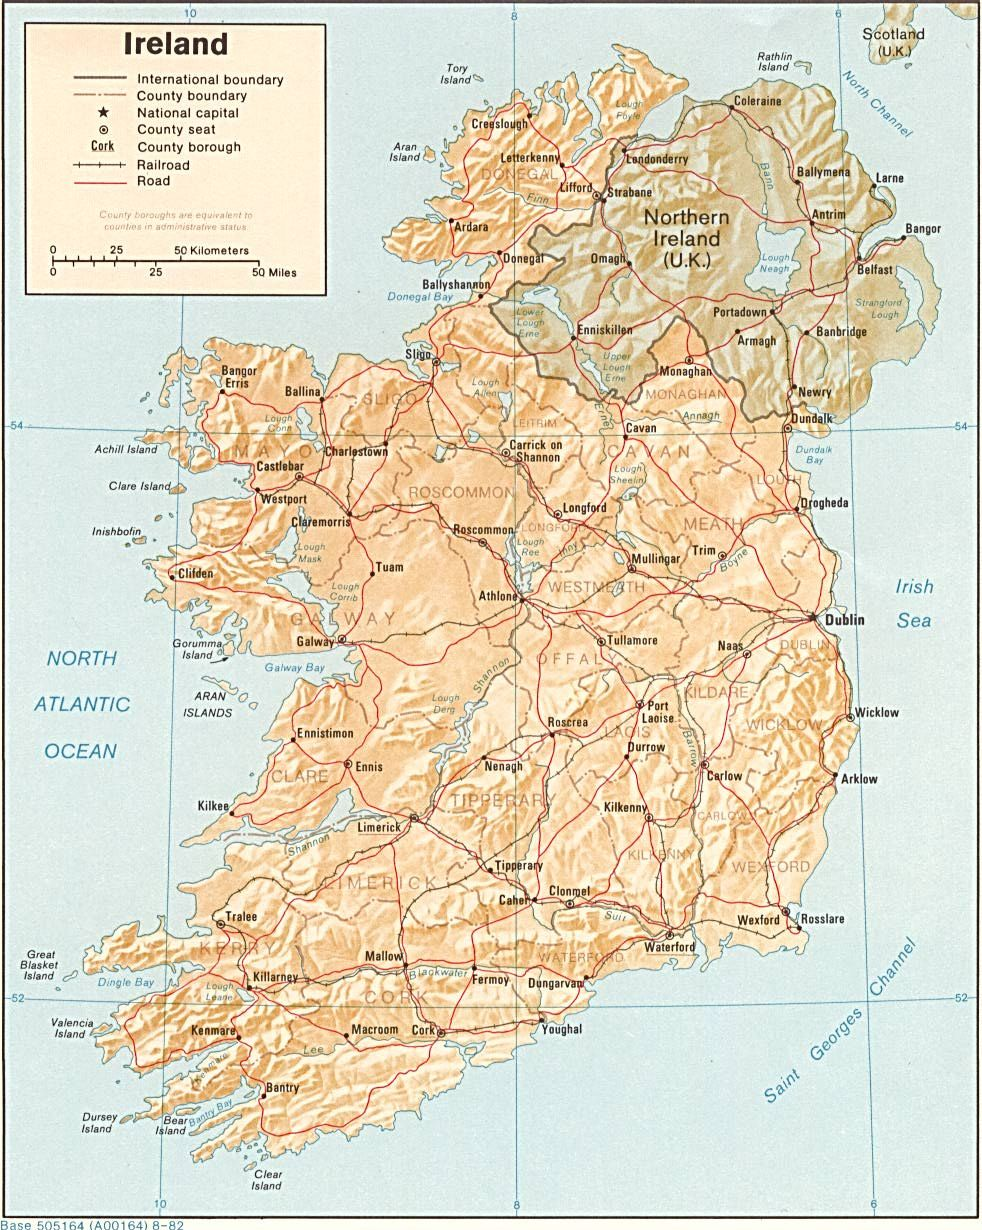 Map Of Southern Ireland Cities.Pin By Carolyn Tylutki On Genealogy Ireland Map Map Southern Ireland